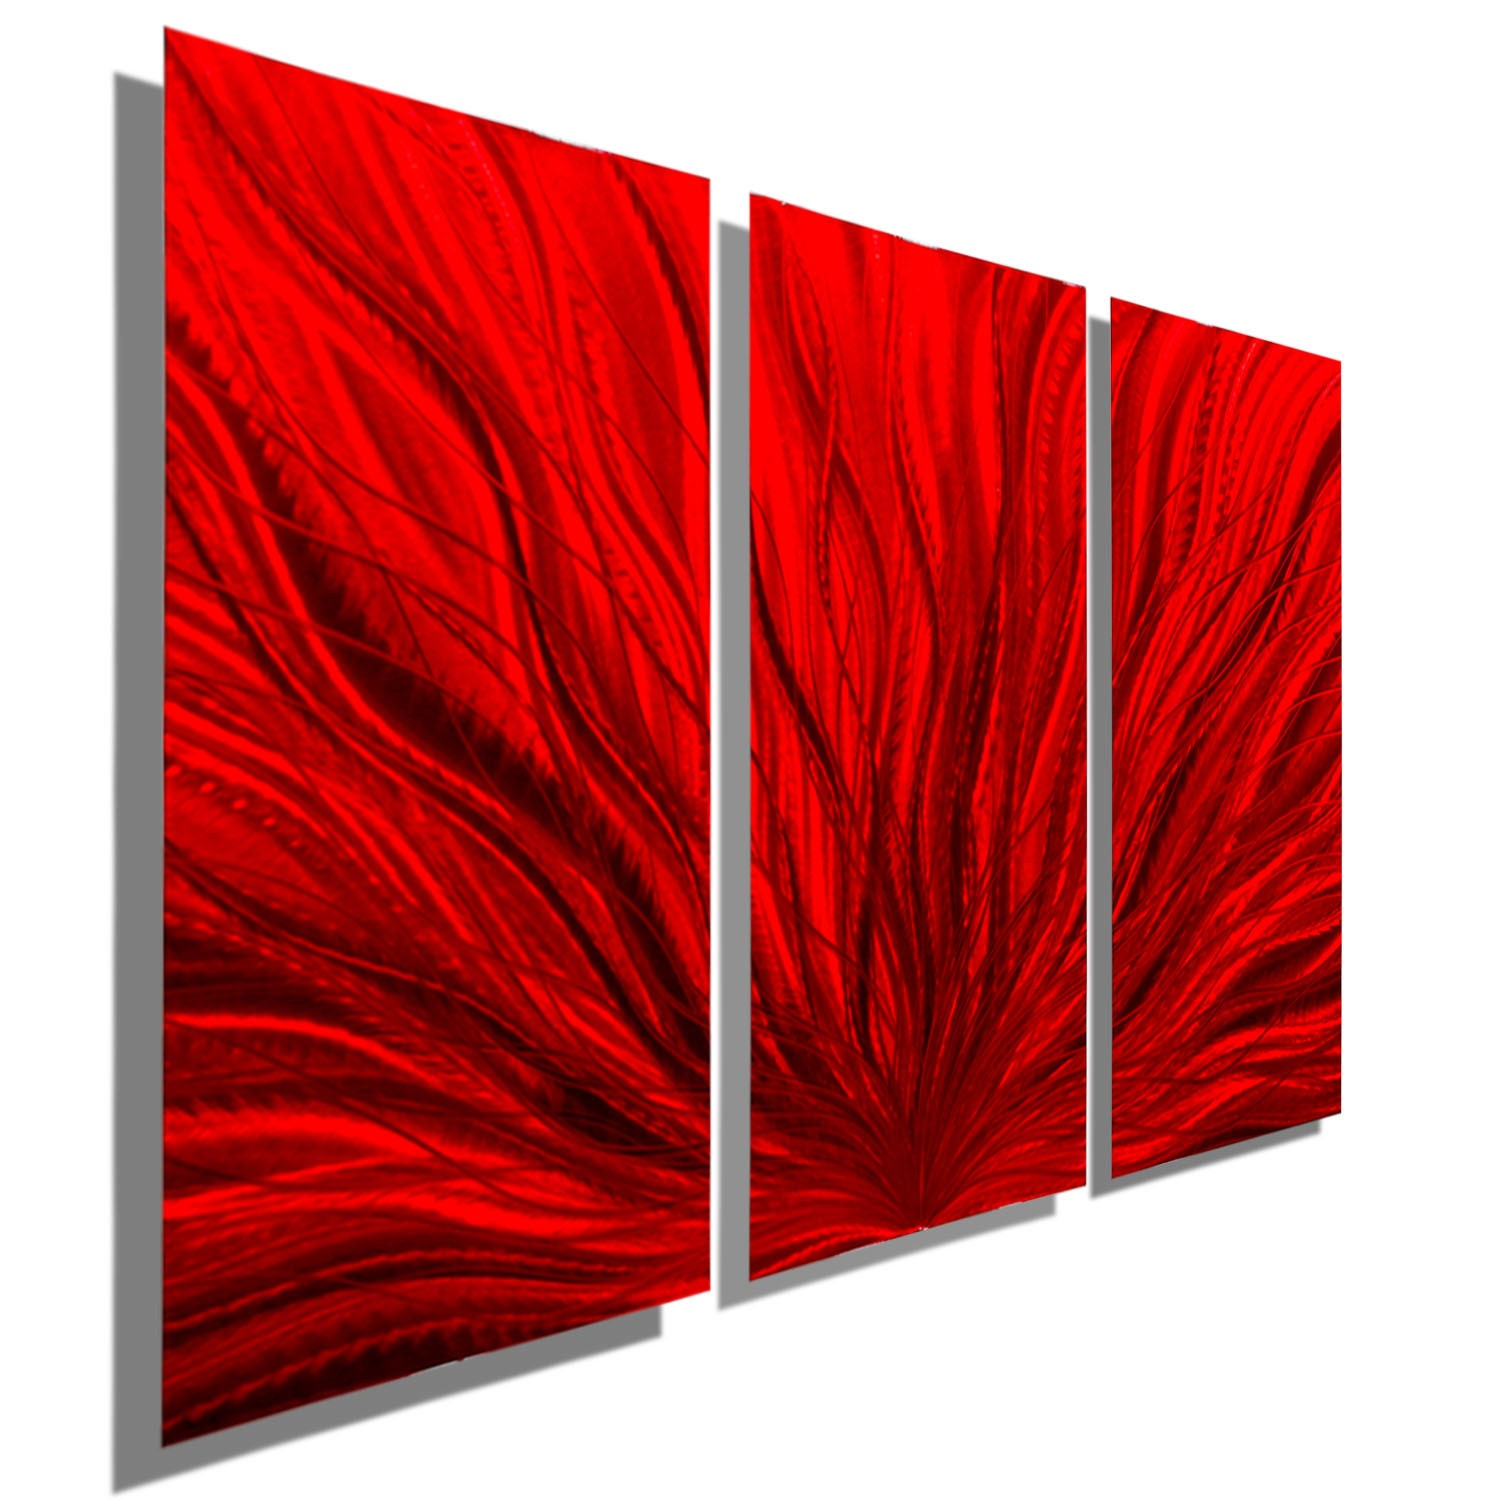 Large 3 panel decorative metal wall art in red contemporary - Decorative metal wall art panels ...